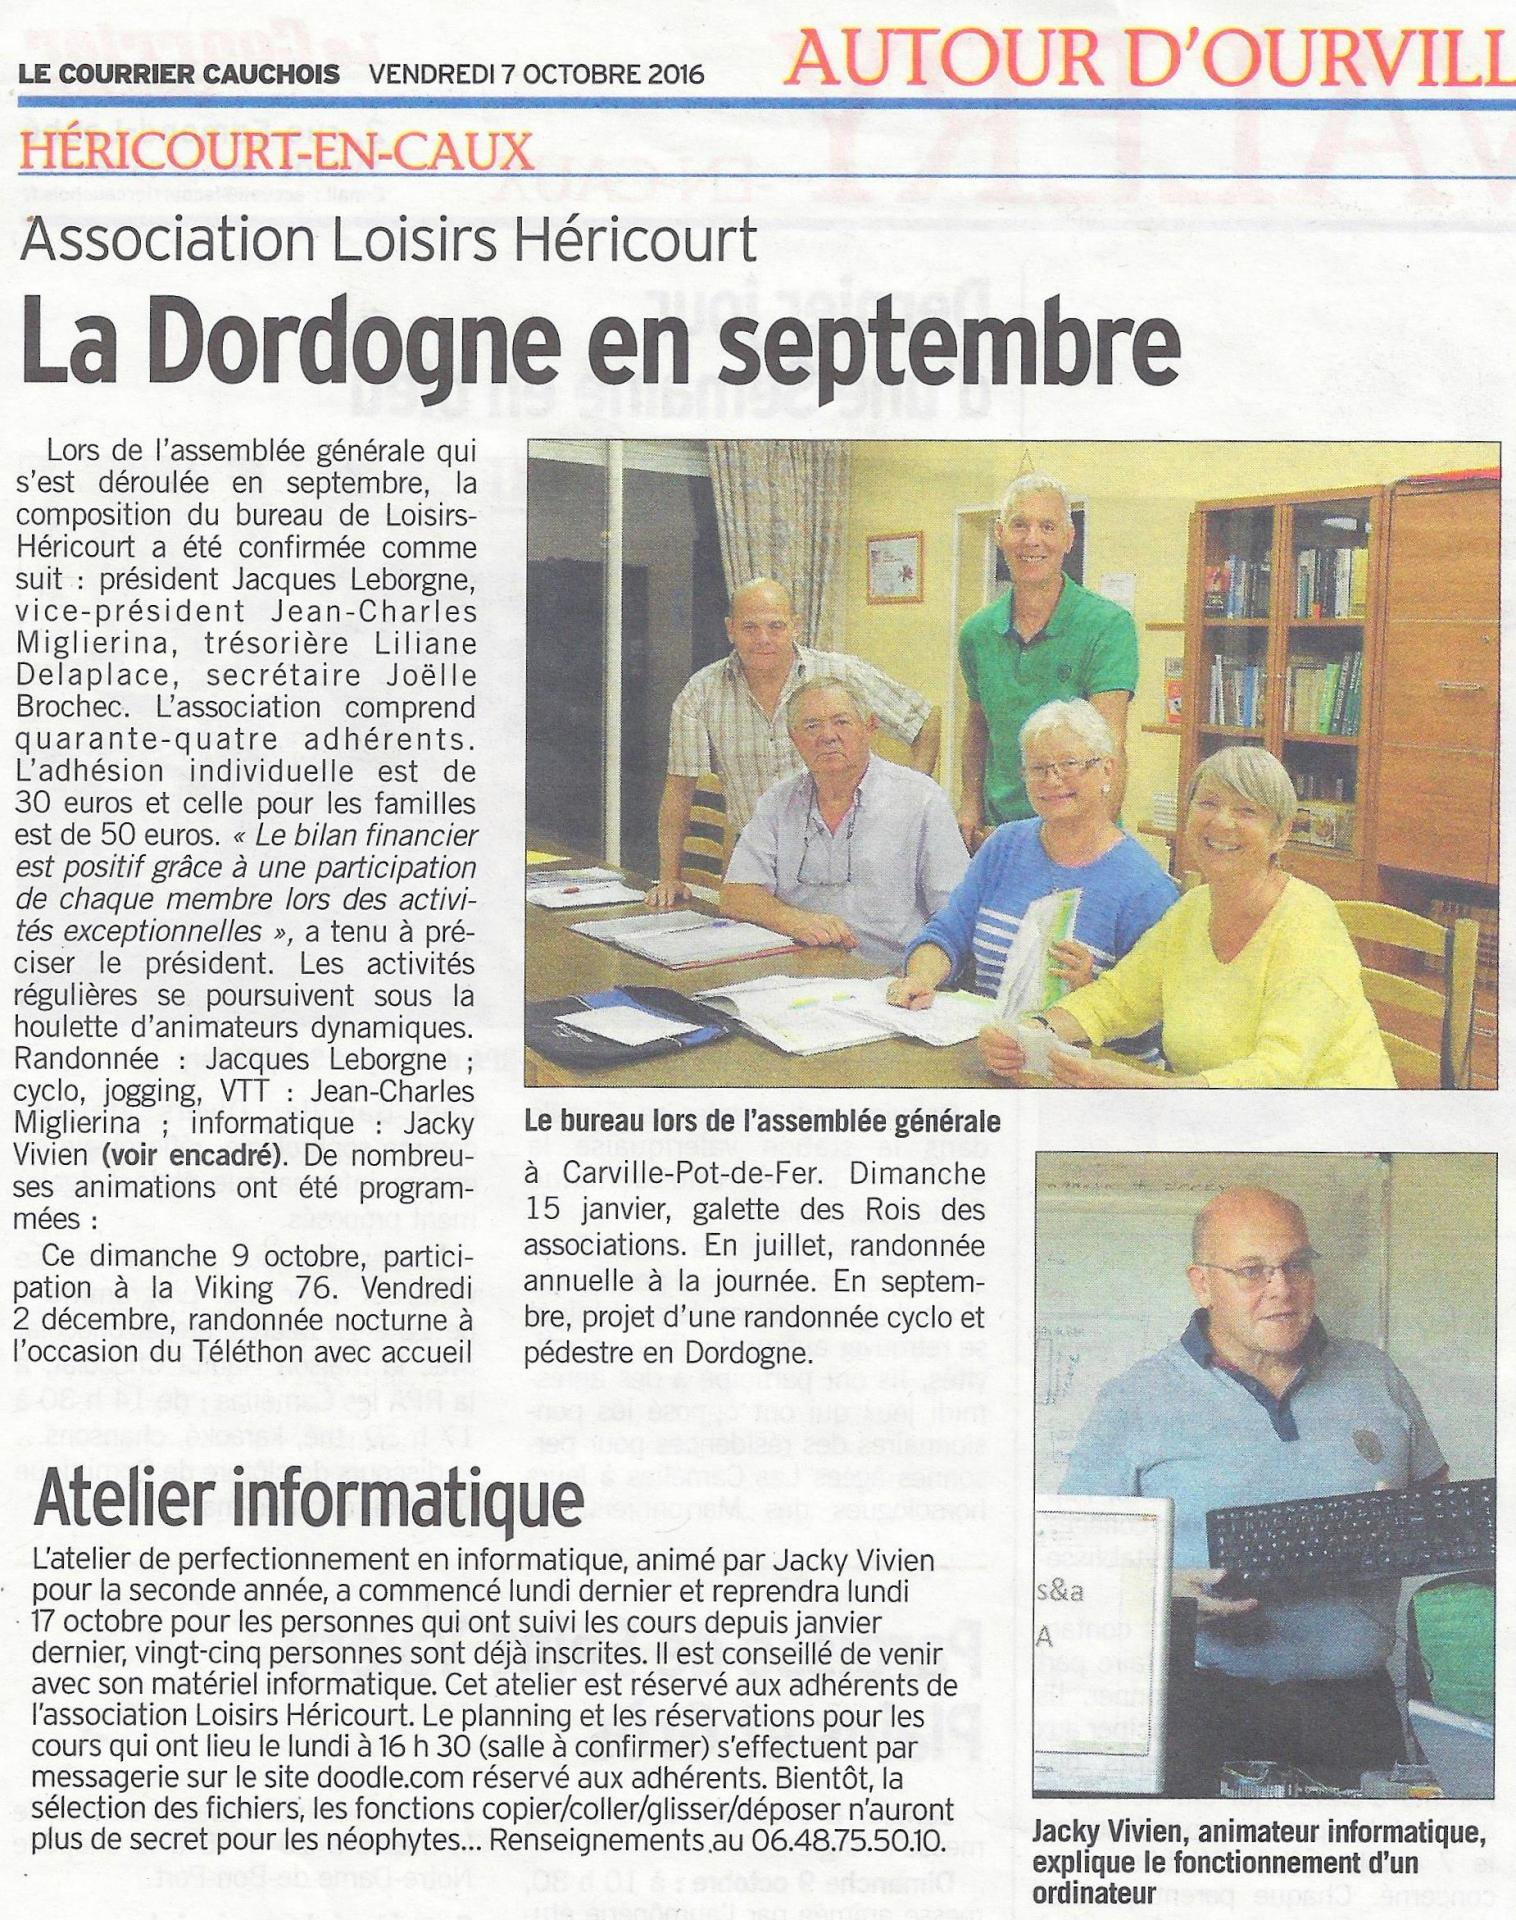 Article courrier cauchois du 09 10 2016